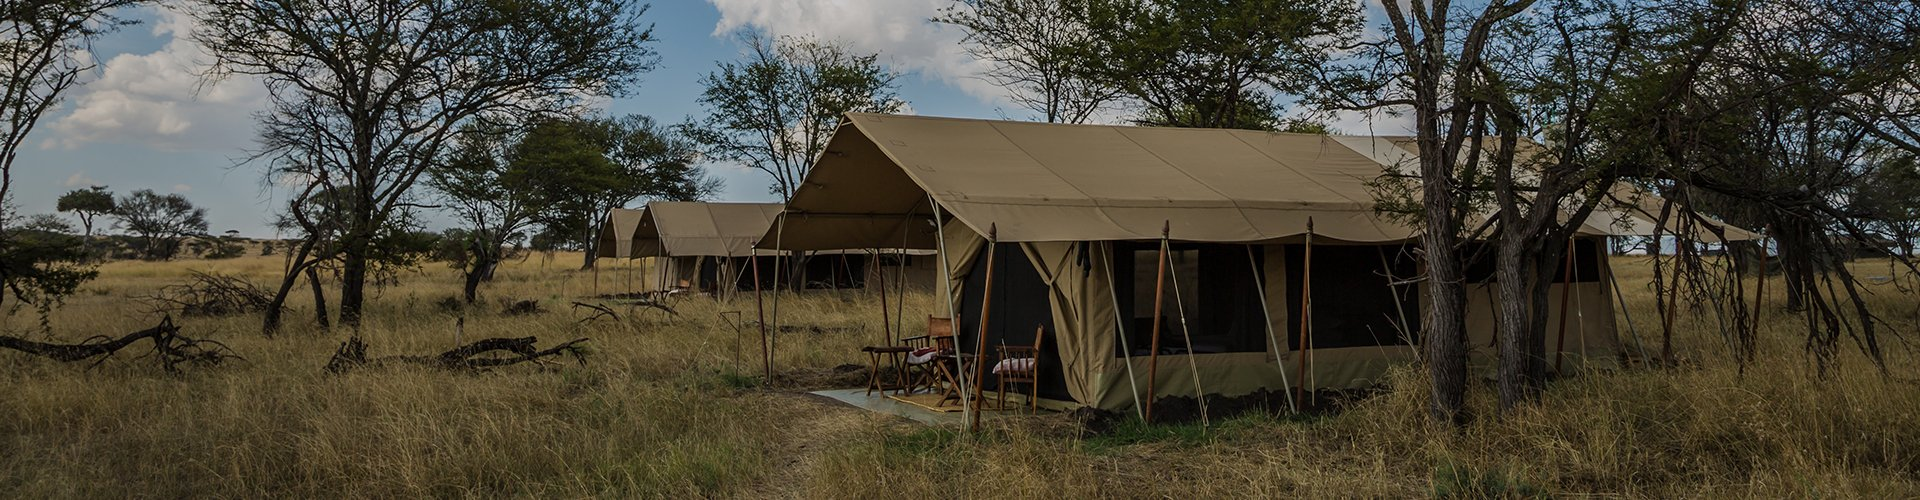 Best Tips for Bush Camping for Beginners